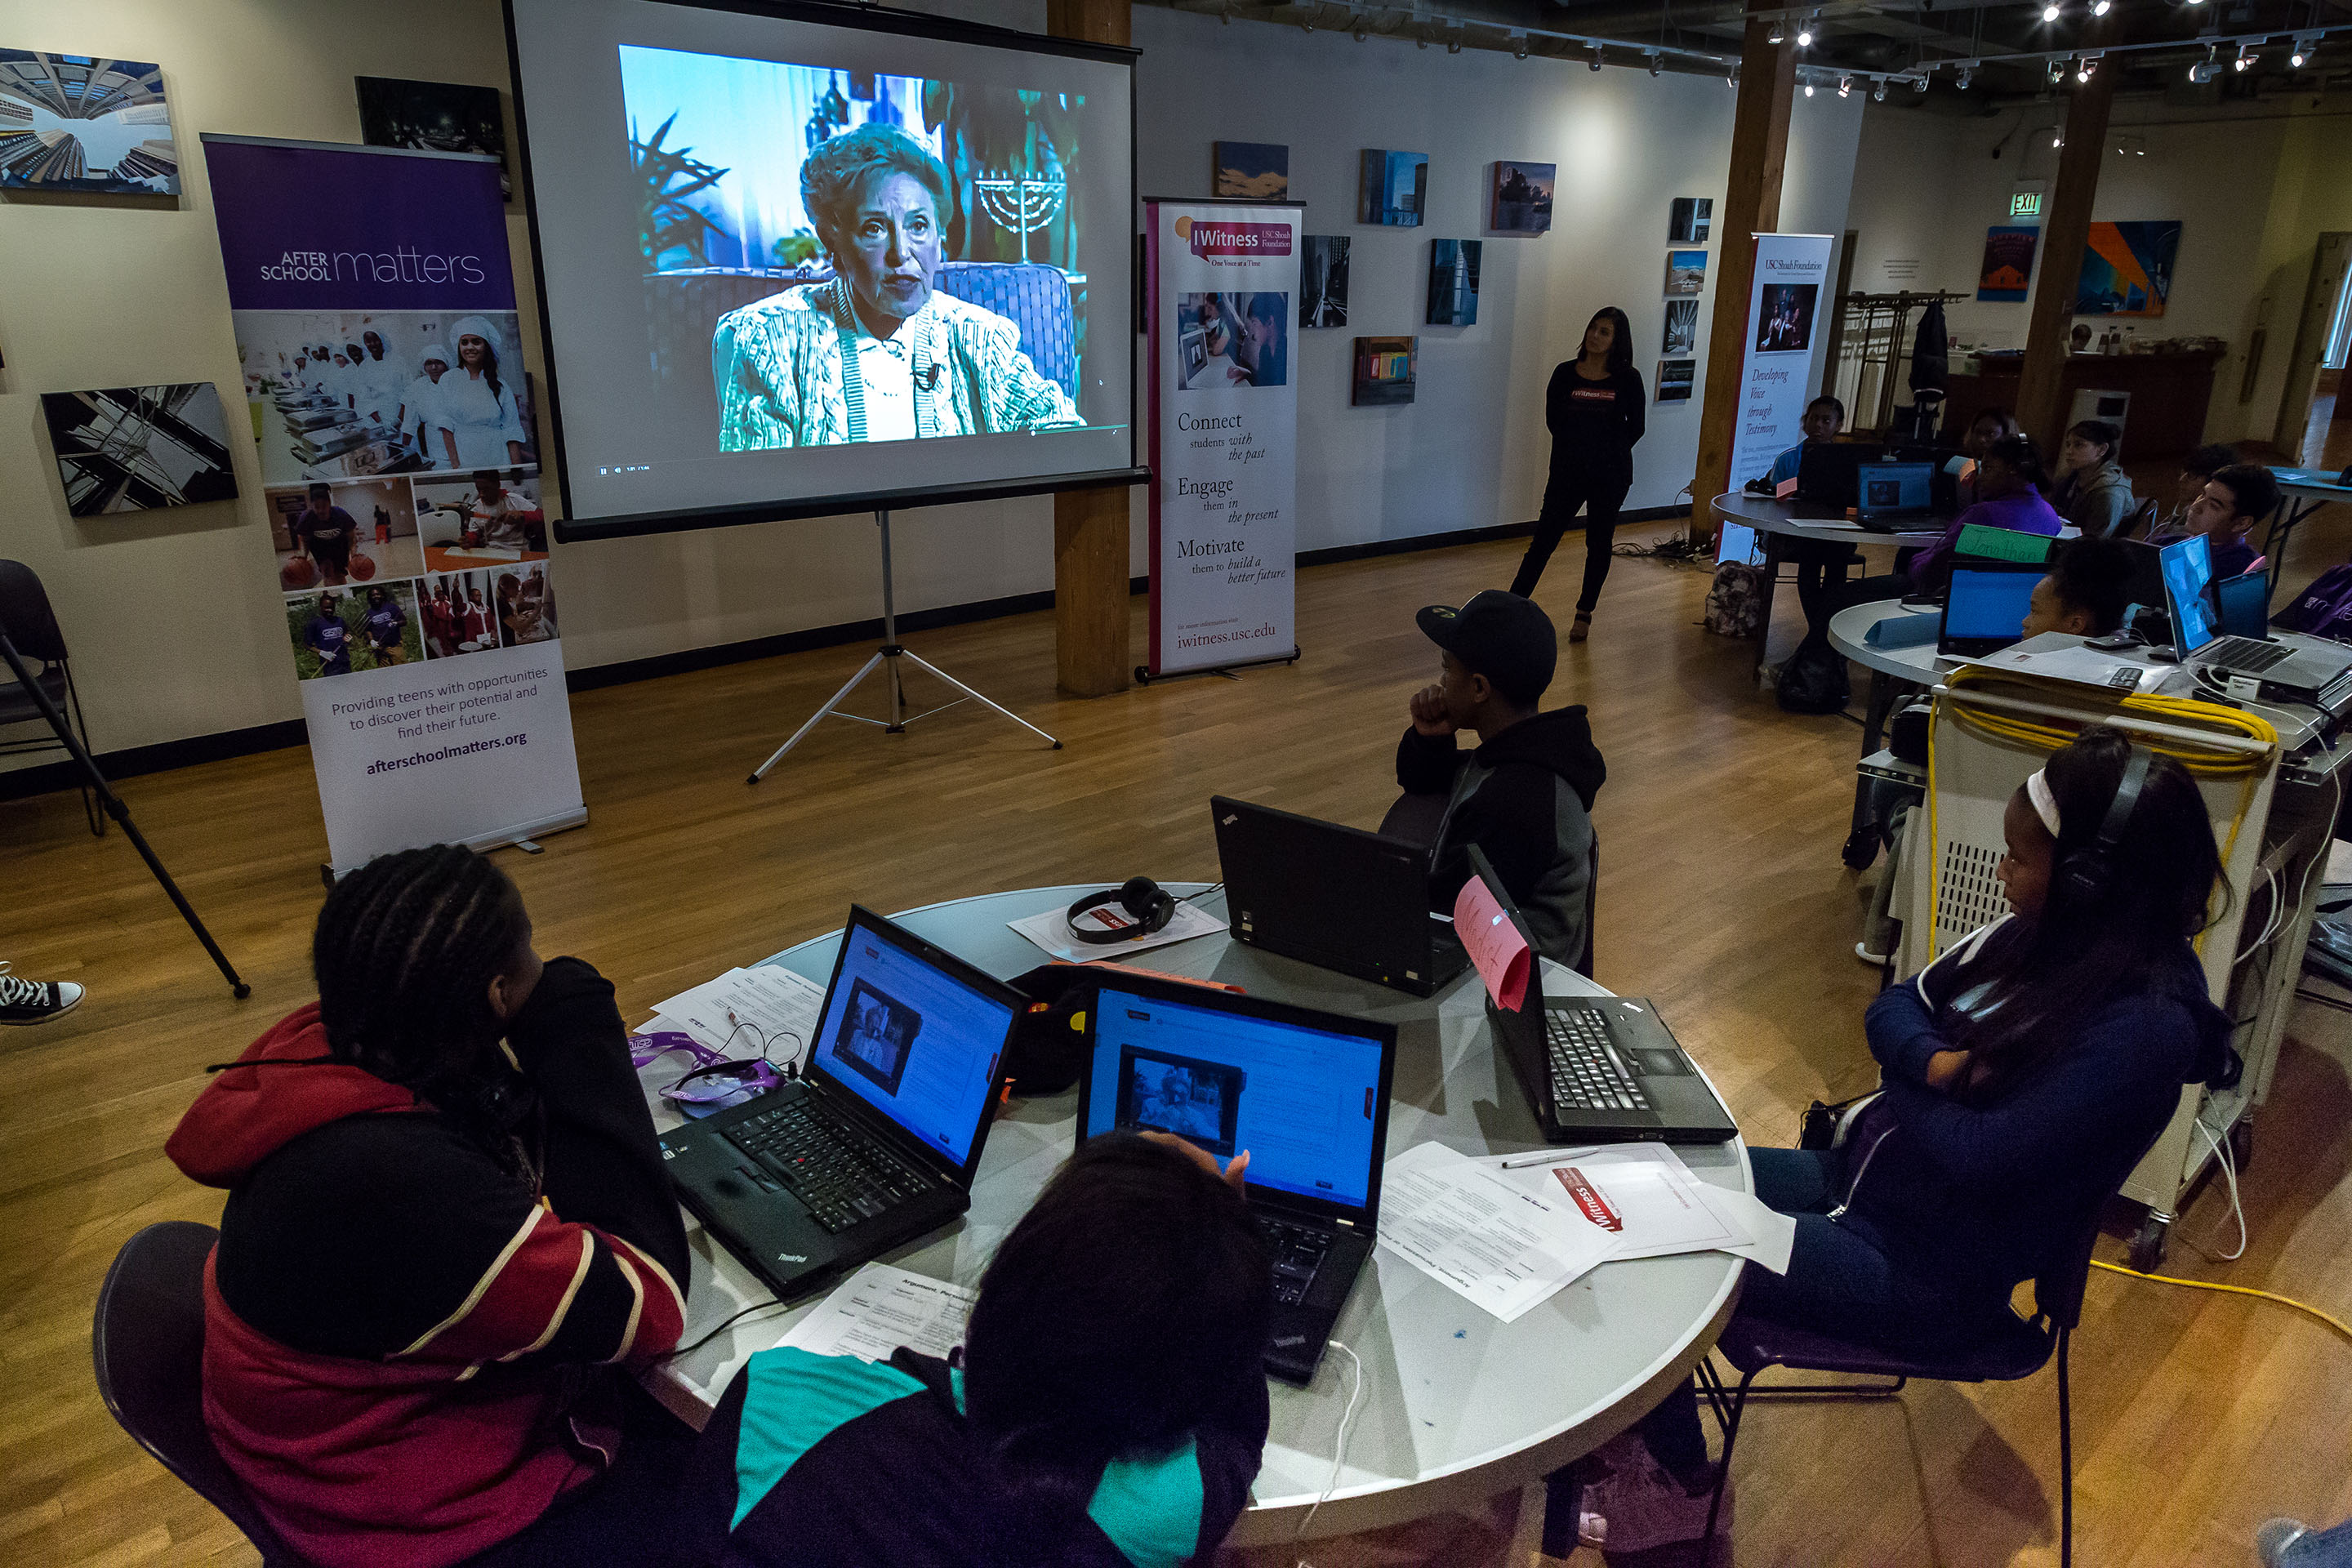 Students watch testimony as part of the IWitness activity